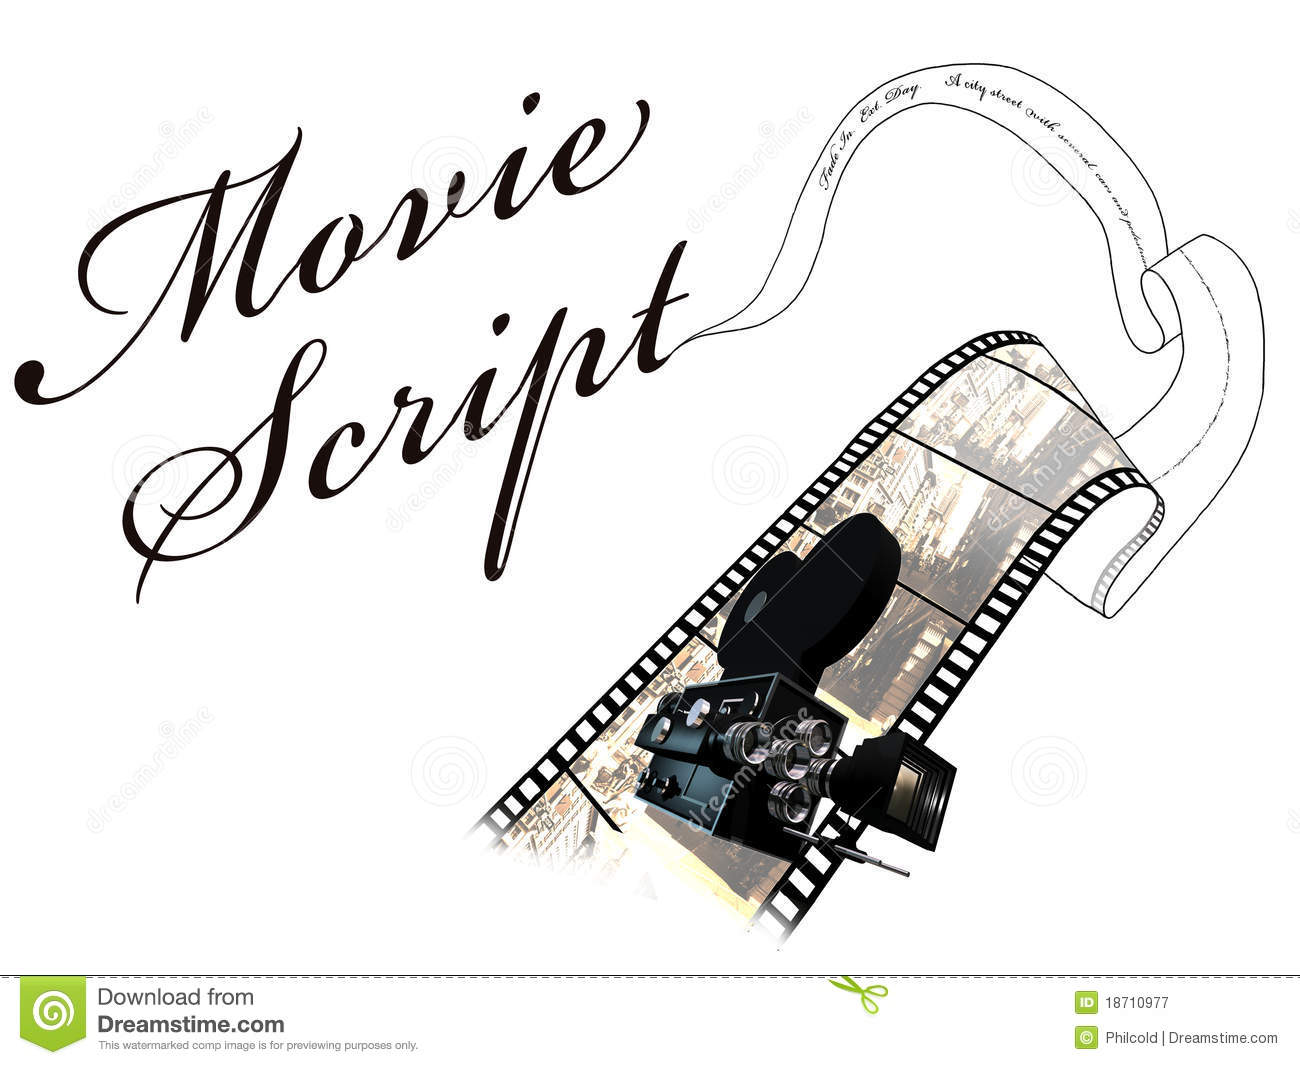 ... how a text of a movie script becomes a sequence in a movie text movie